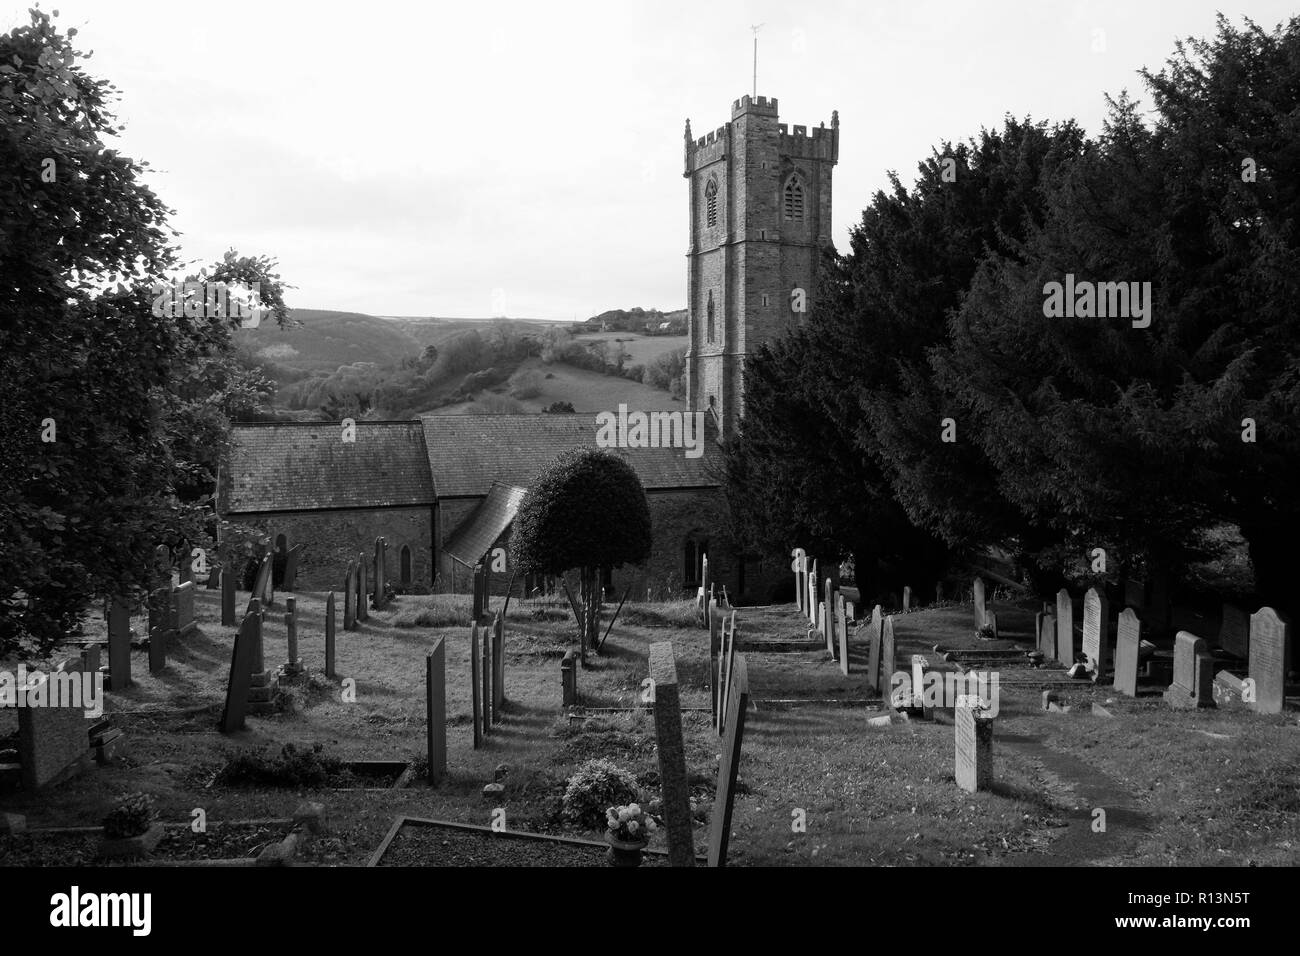 St. Peter's Church, Berrynarbor, Near Ilfracombe, Devon, showing graveyard in foreground in black and white, in winter, in the parish of Exeter. Stock Photo